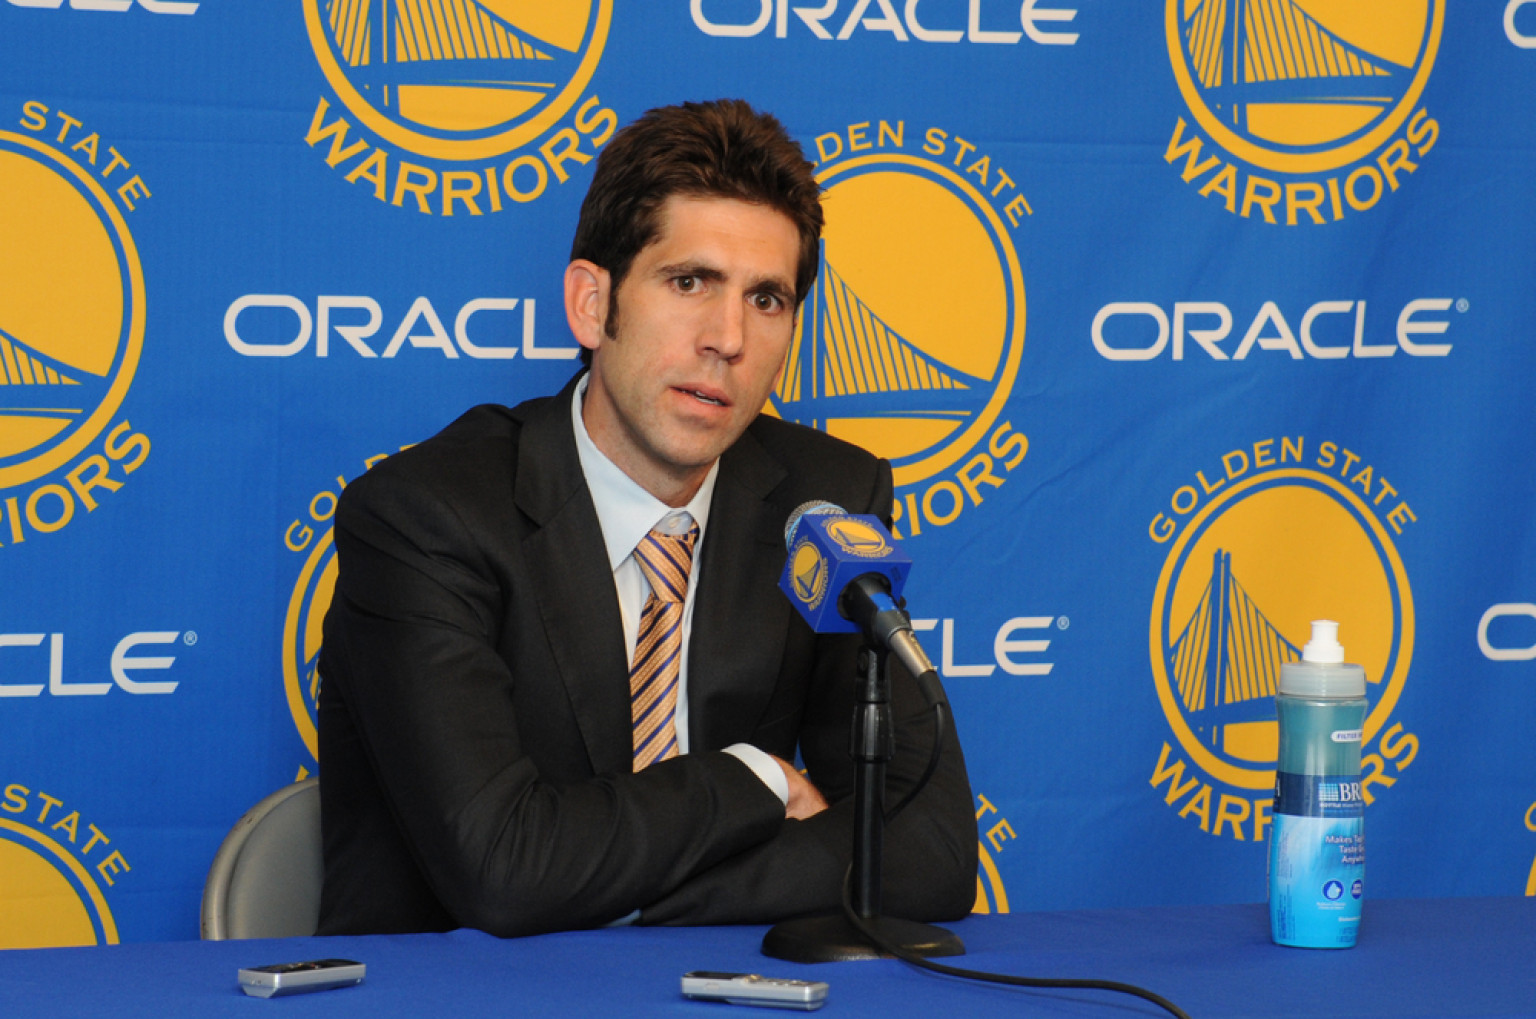 OAKLAND, CA - APRIL 26: Bob Myers, the new general manager of the Golden State Warriors, speaks to members of the media before a game against the San Antonio Spurs on April 26, 2012 at Oracle Arena in Oakland, California. NOTE TO USER: User expressly acknowledges and agrees that, by downloading and or using this photograph, user is consenting to the terms and conditions of Getty Images License Agreement. Mandatory Copyright Notice: Copyright 2012 NBAE (Photo by Garrett Ellwood/NBAE via Getty Images)